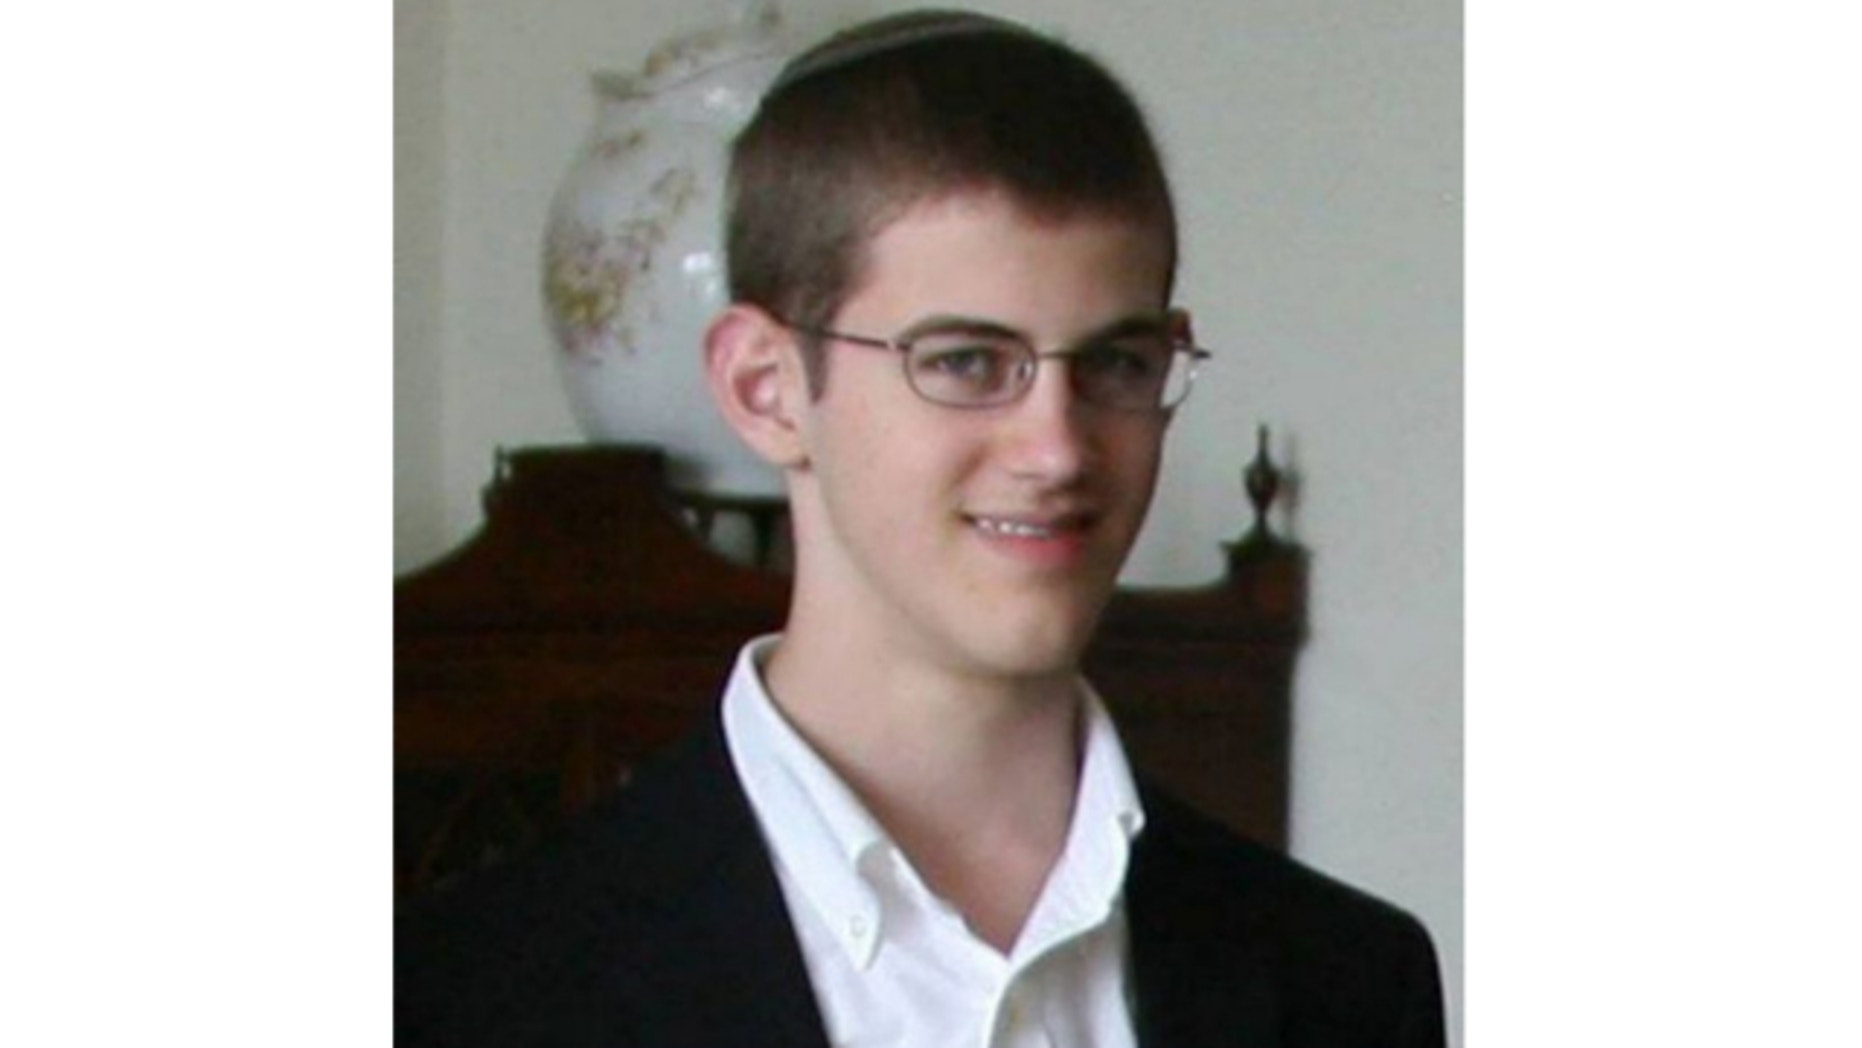 UNDATED: This image shows Caleb Jacoby, the 16-year-old son of Boston Globe columnist Jeff Jacoby, who has been missing since Monday.